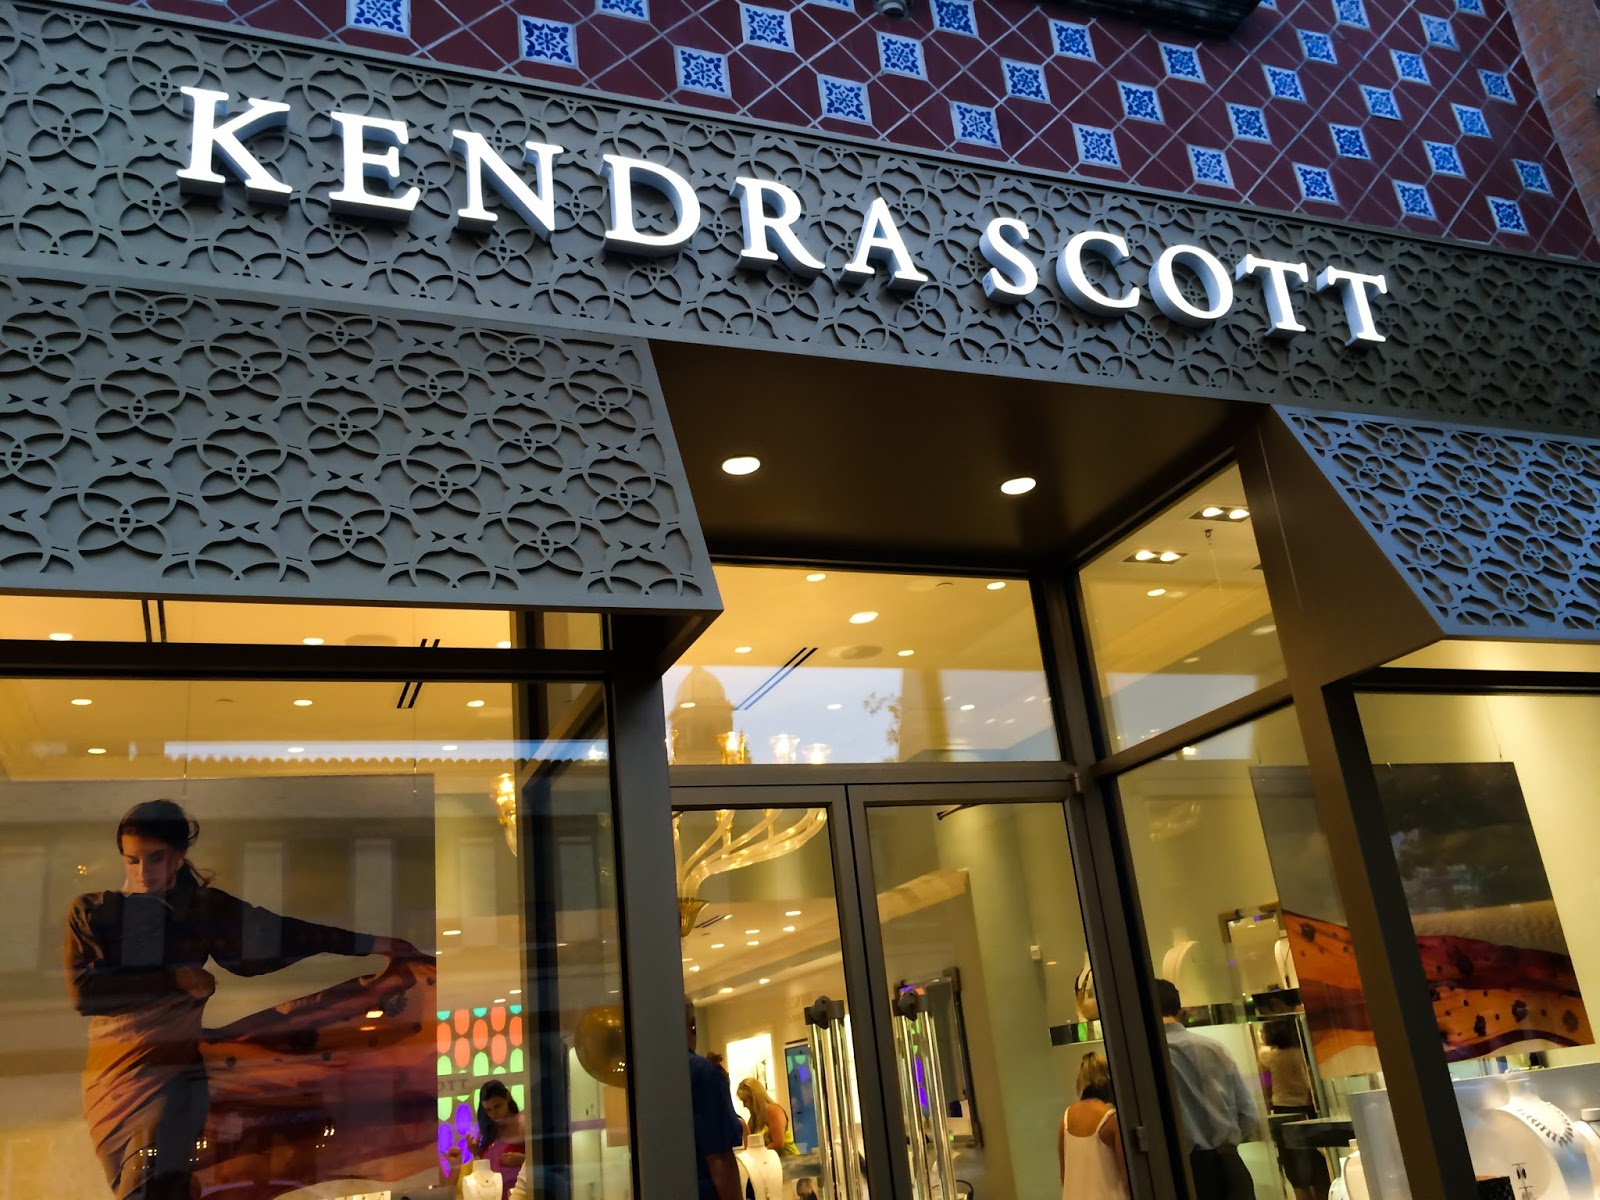 THE BLOG GUILD LAUNCH - KENDRA SCOTT'S NEW STORE